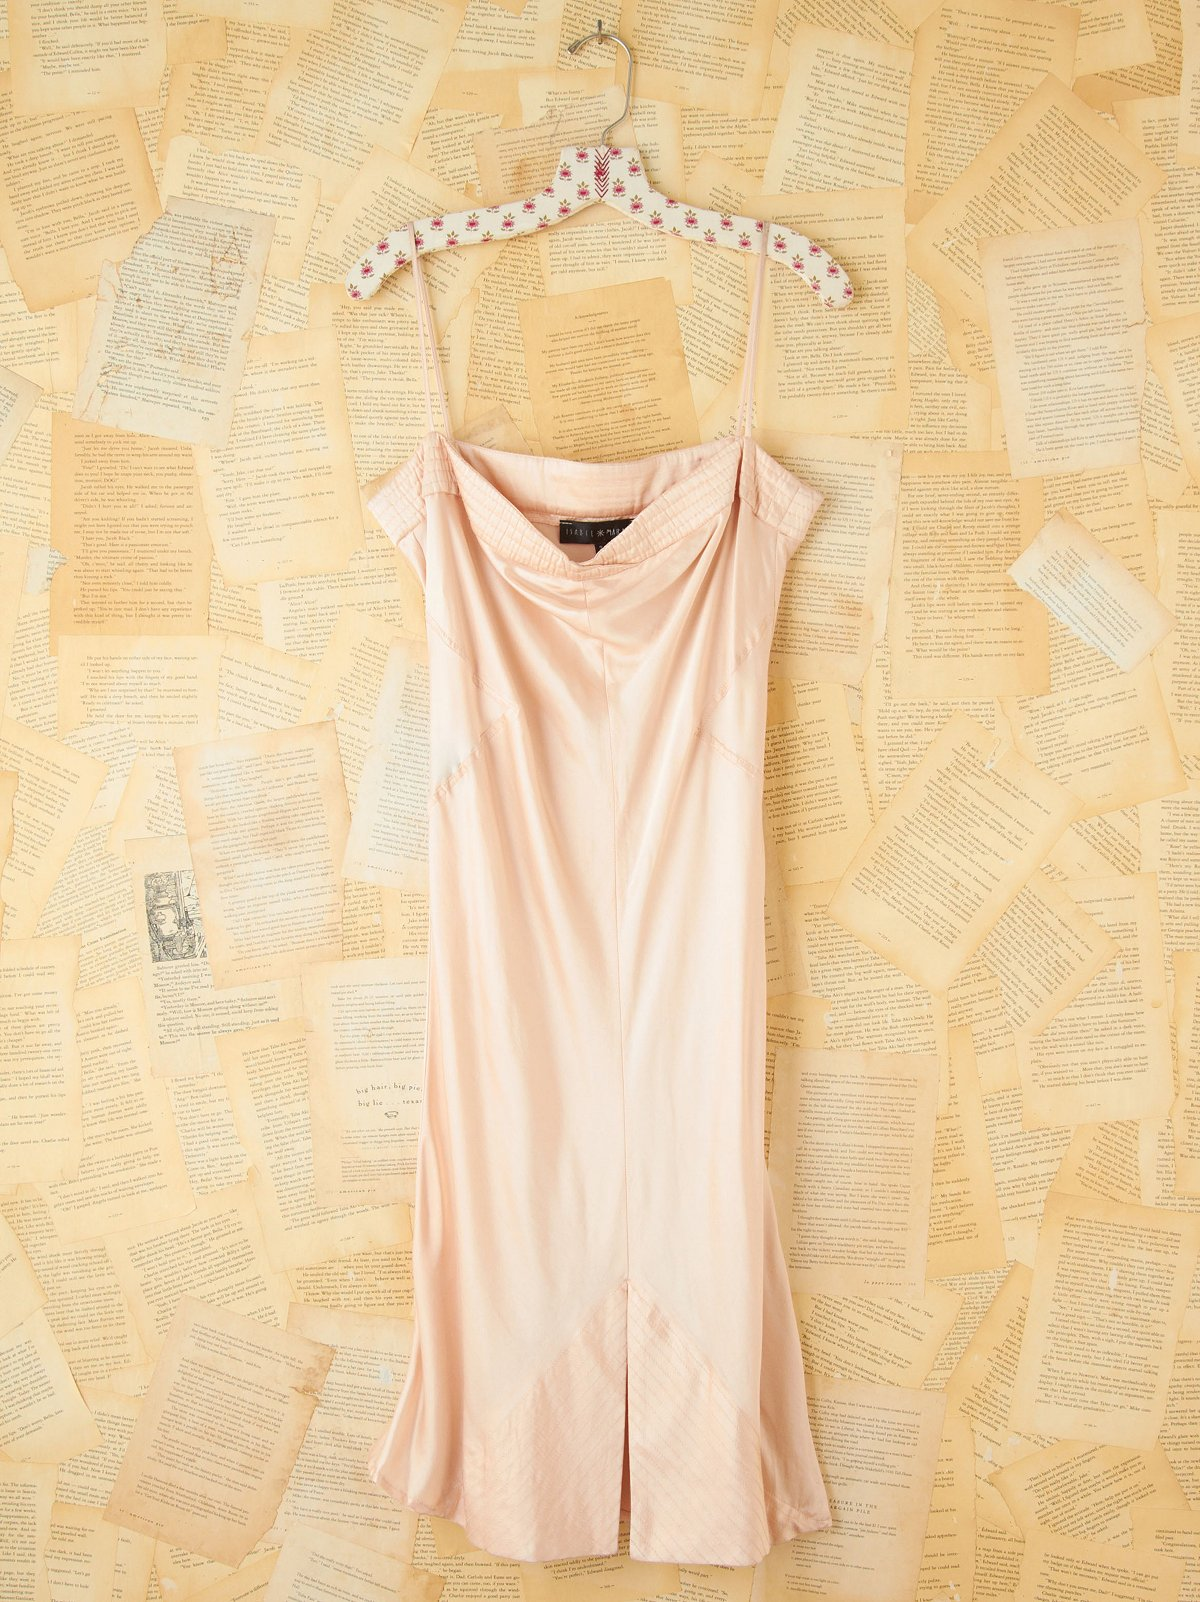 Vintage Isabel Marant Dress